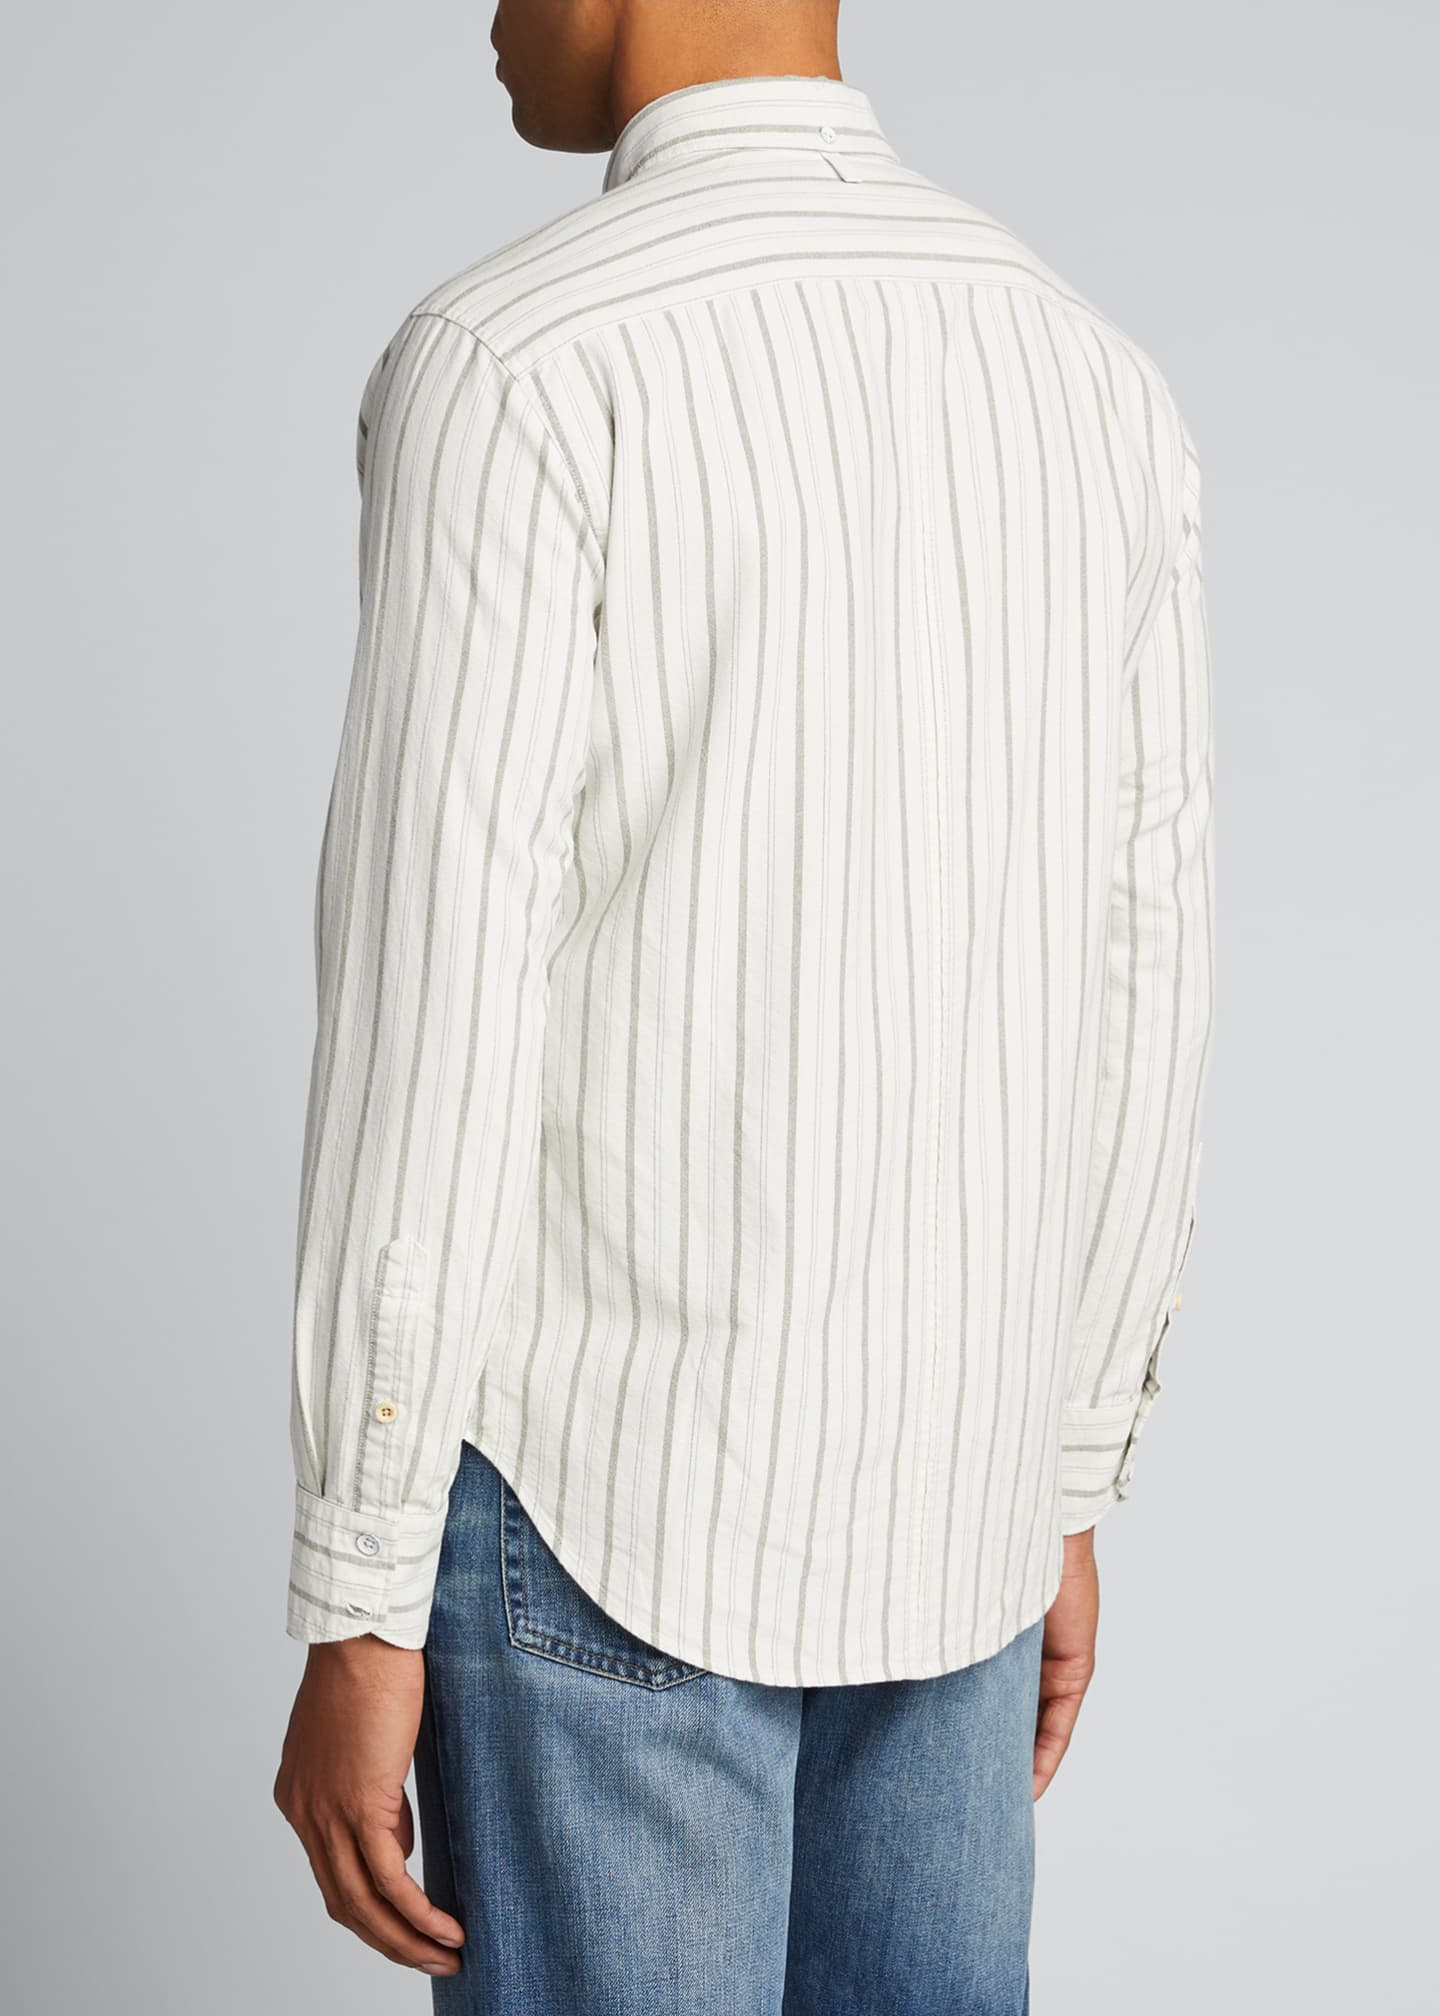 Image 2 of 5: Men's Tomlin Striped Oxford Sport Shirt